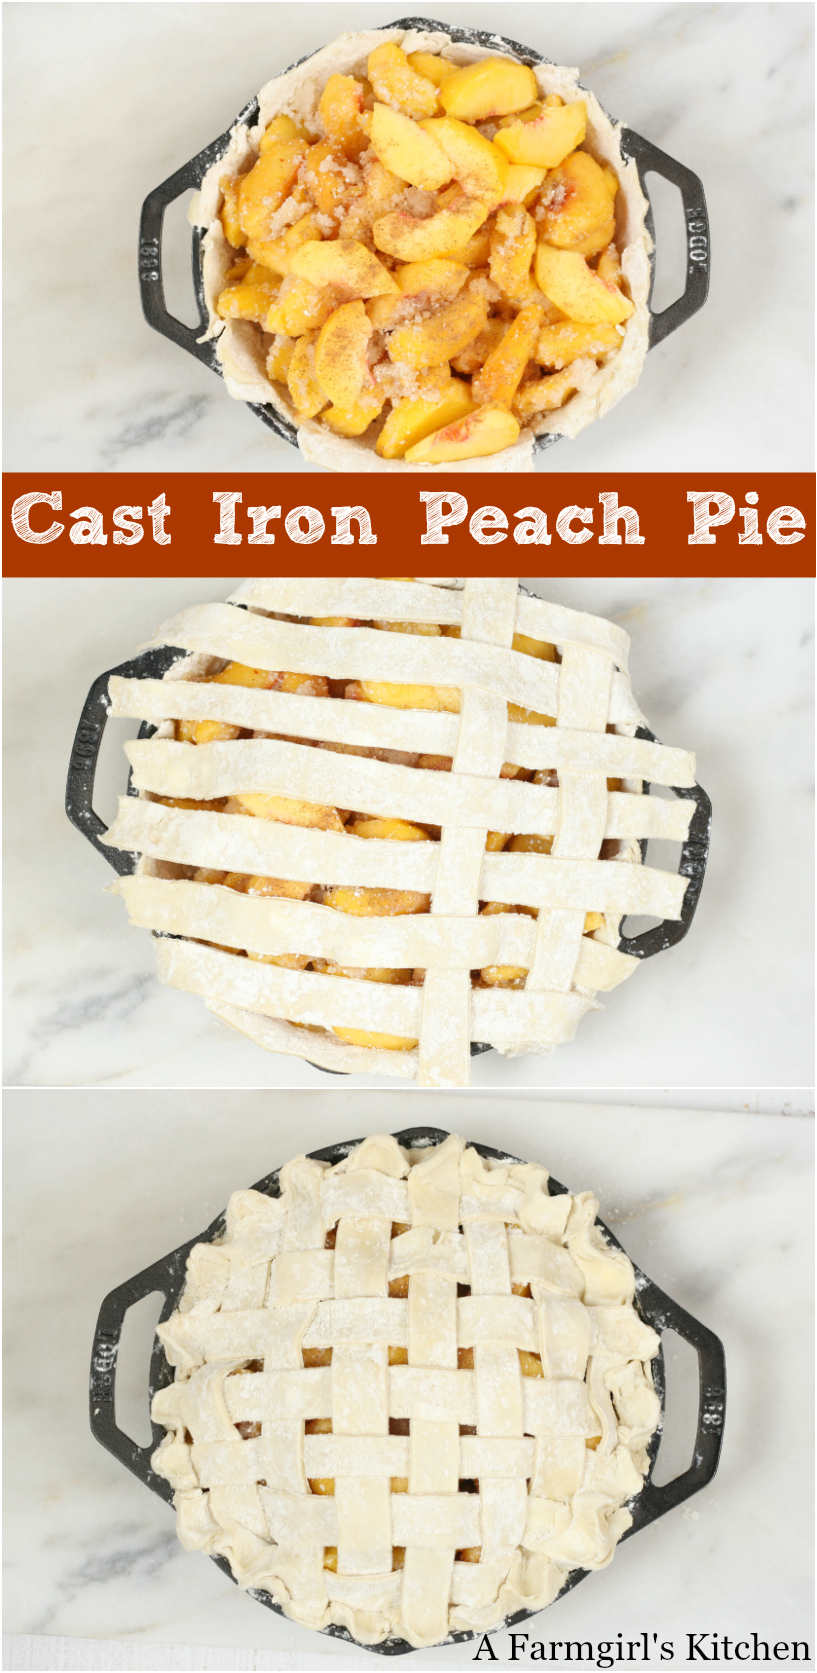 This Cast Iron Peach Pie is simple to make with a homemade lattice crust and baked in a cast iron pan, leaving the crust super flaky. #pastry #PIE #peaches #recipe #peachpie #homemade #bakefromscratch